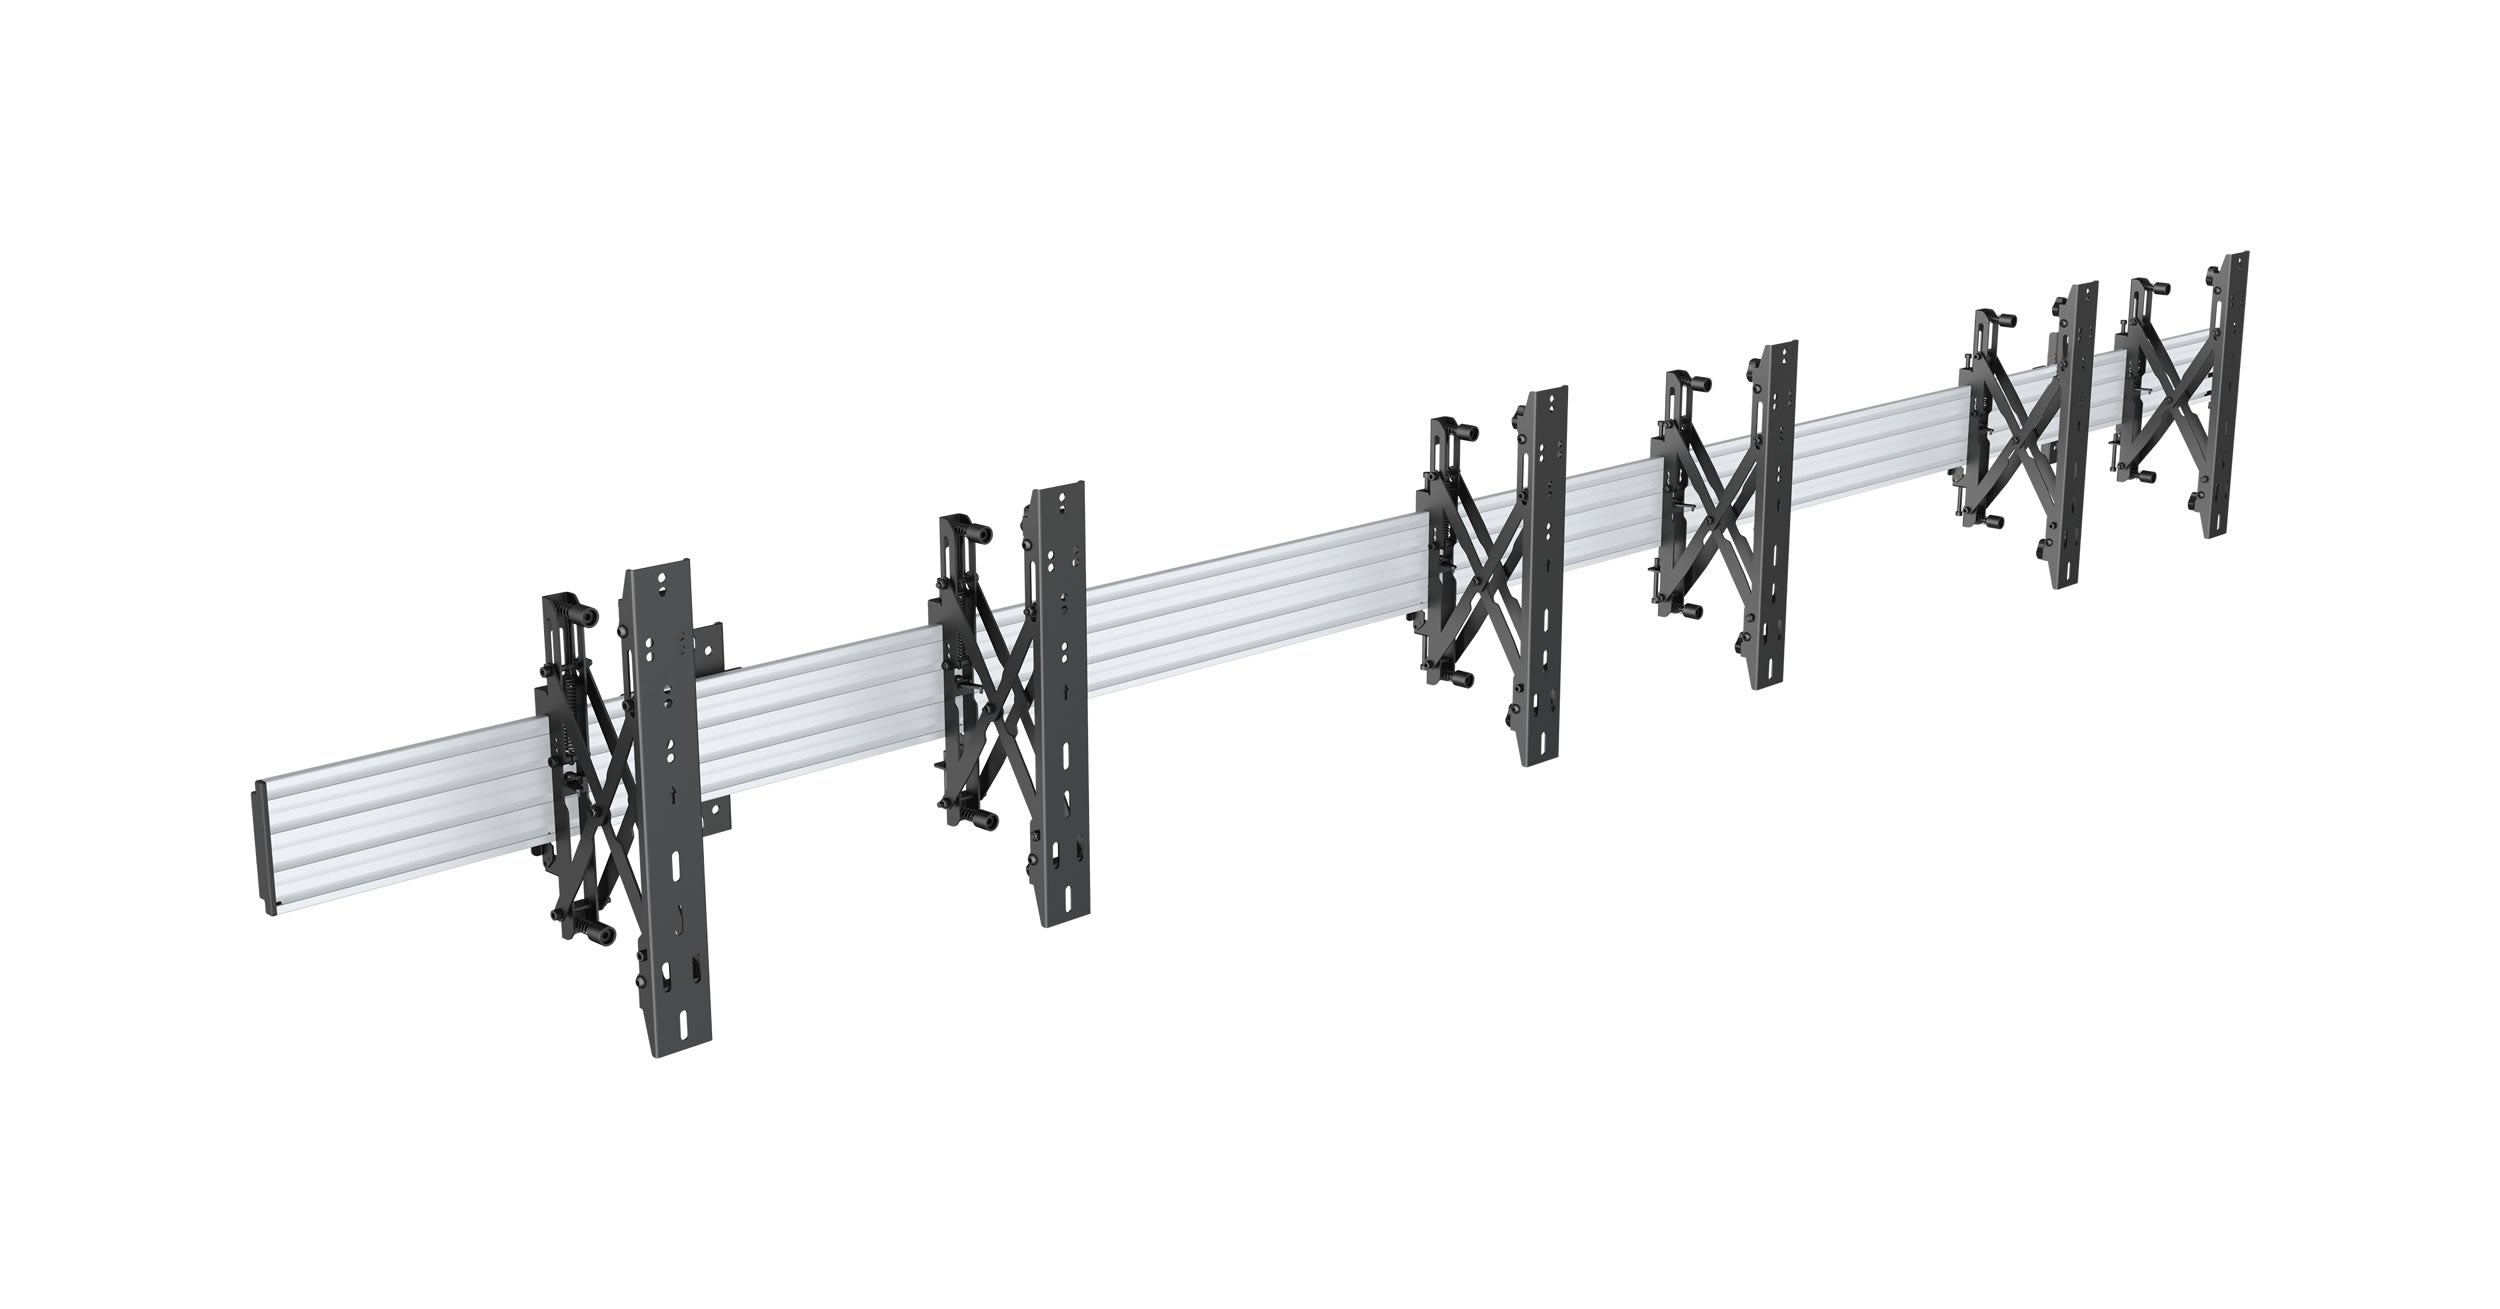 64-1313P 1x3 Video Wall Wall Mount Bracket - Push & Pop Arms